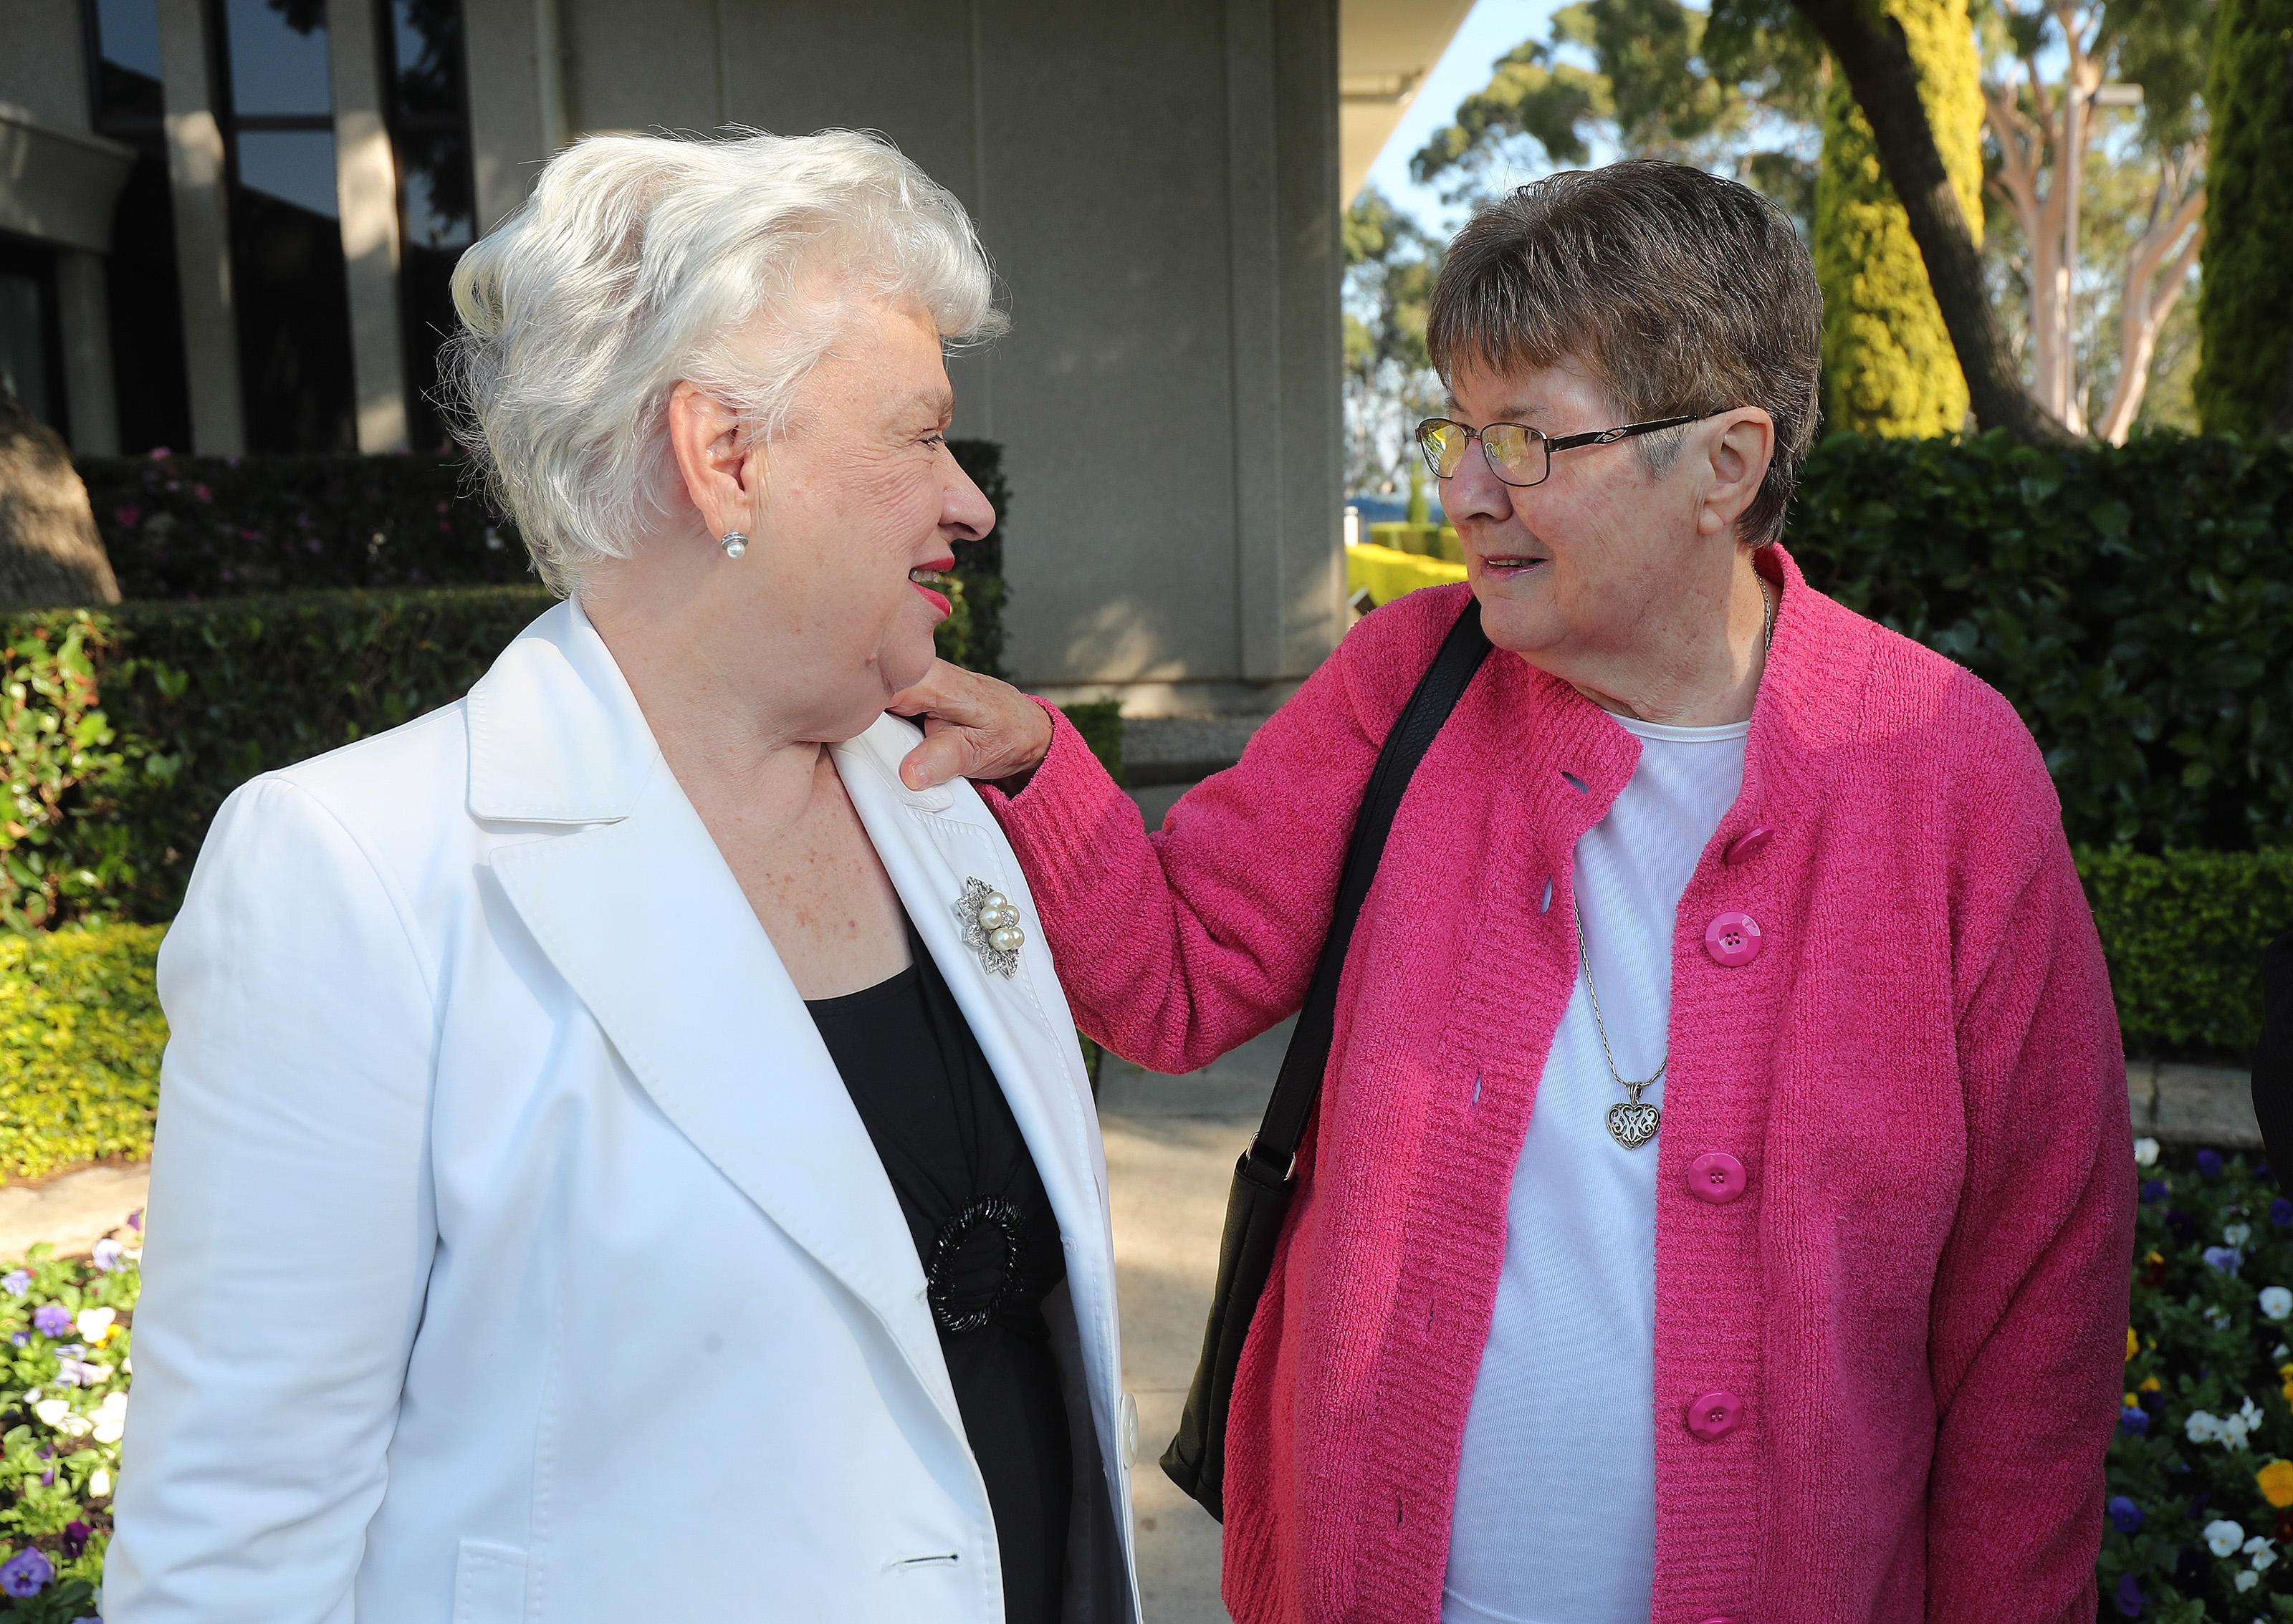 Friends Elva Merle Mitchell and Diane Parton talk on May 18, 2019, in Sydney, Australia.